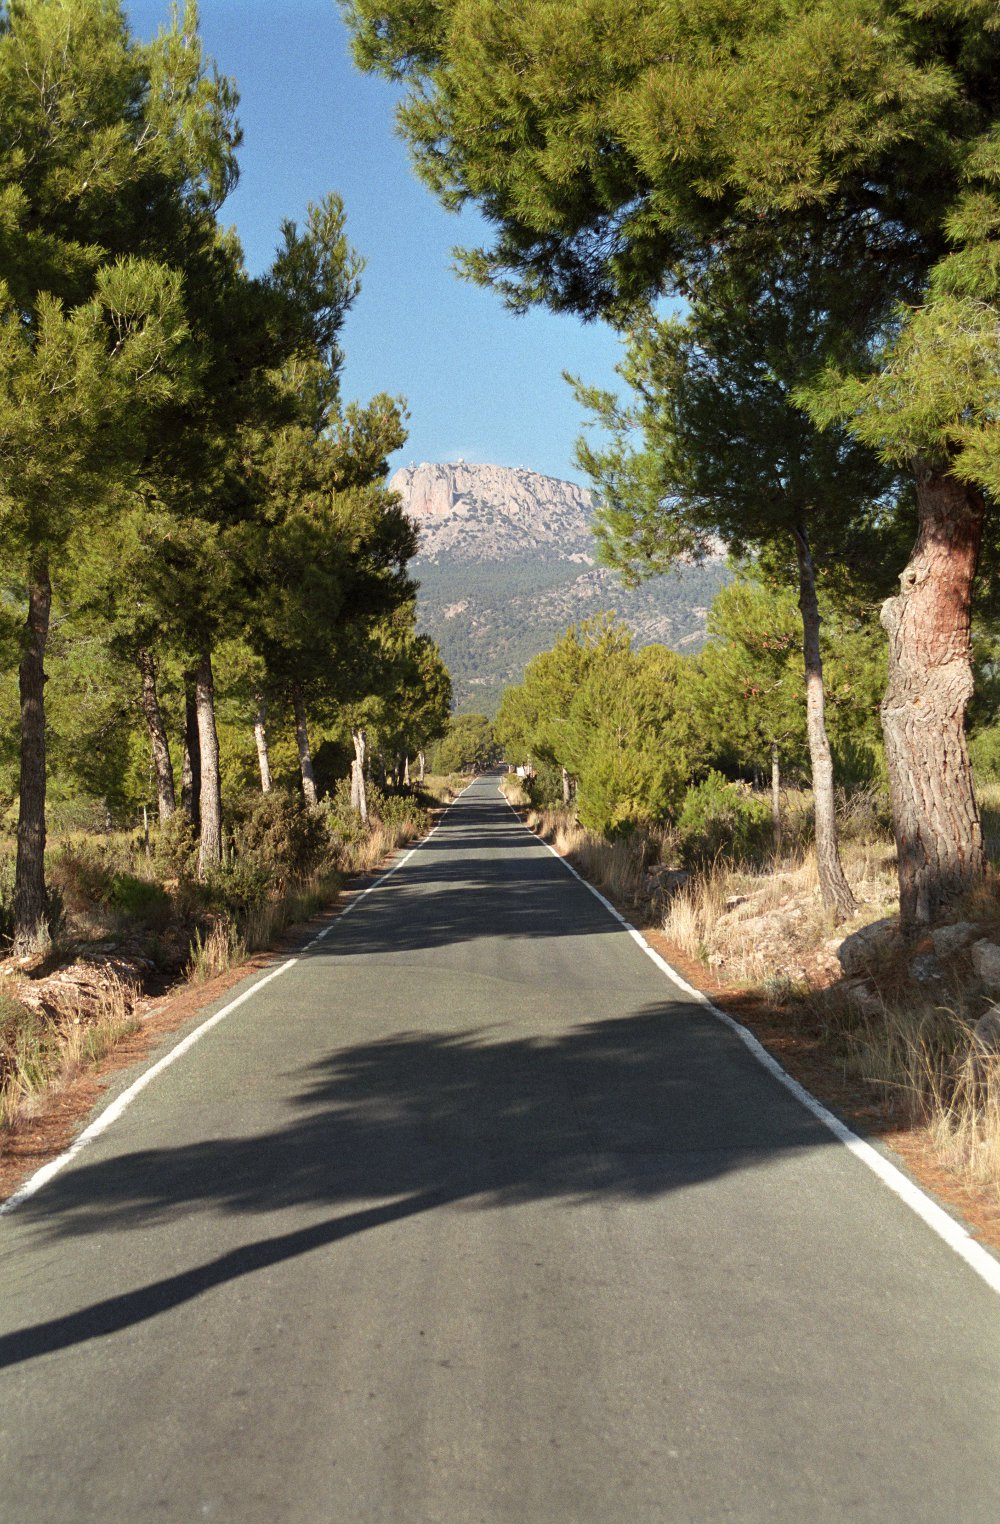 Enjoy the Sierra Espuña Parque Regional in Murcia